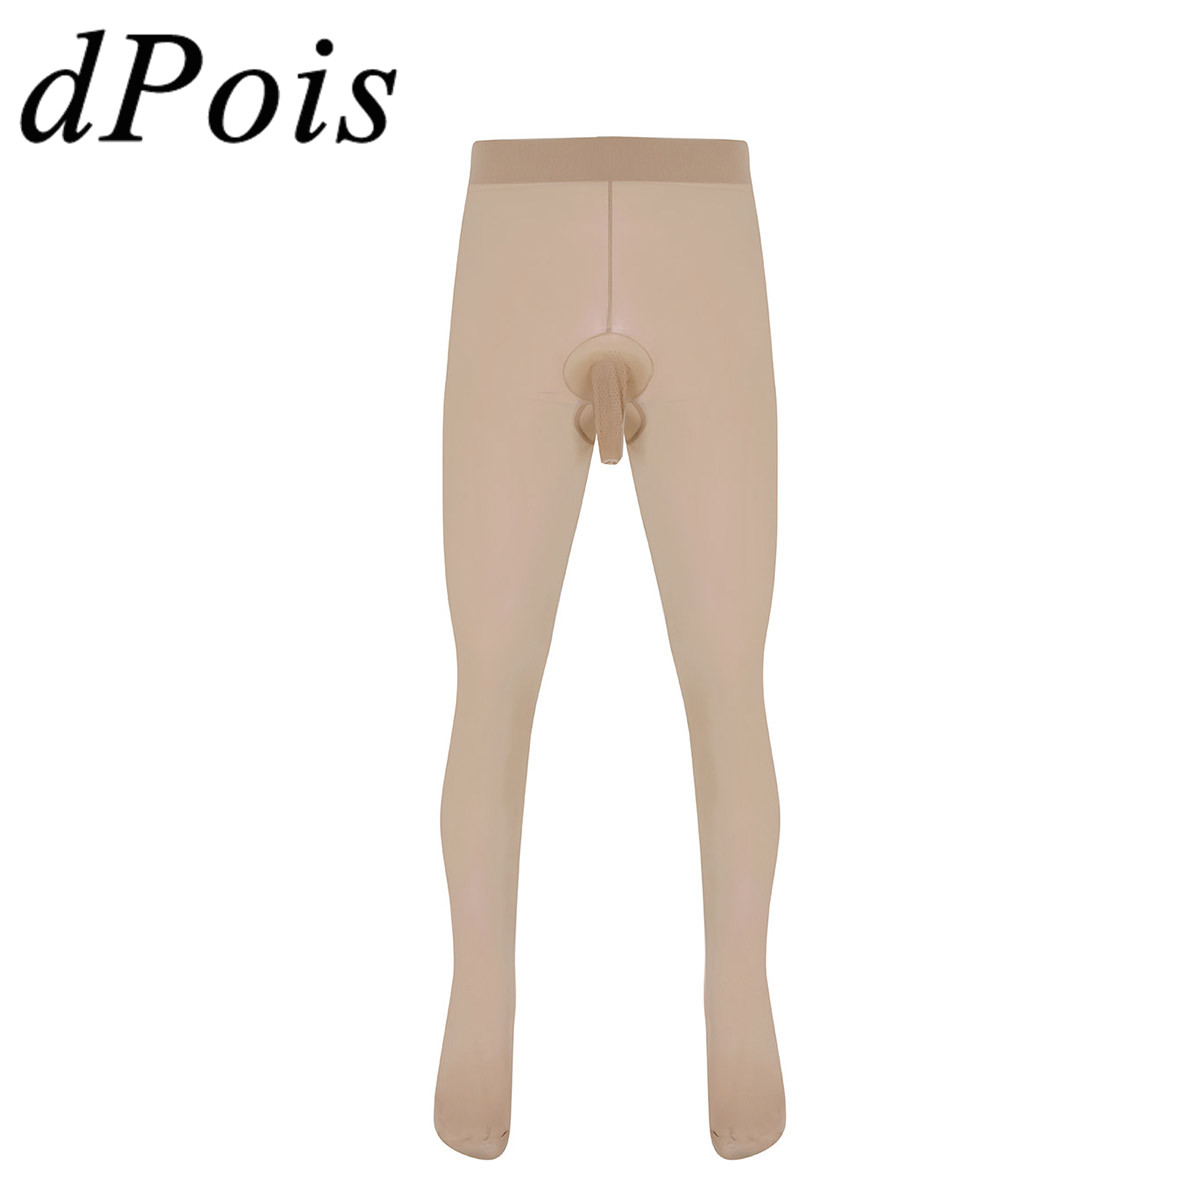 Mens Skinny Stretchy Pantyhose with Open Closed Penis Pouch for Men Tights Stockings Pants Sexy Leggings Socks Seamless Hosiery kožne rukavice bez prstiju